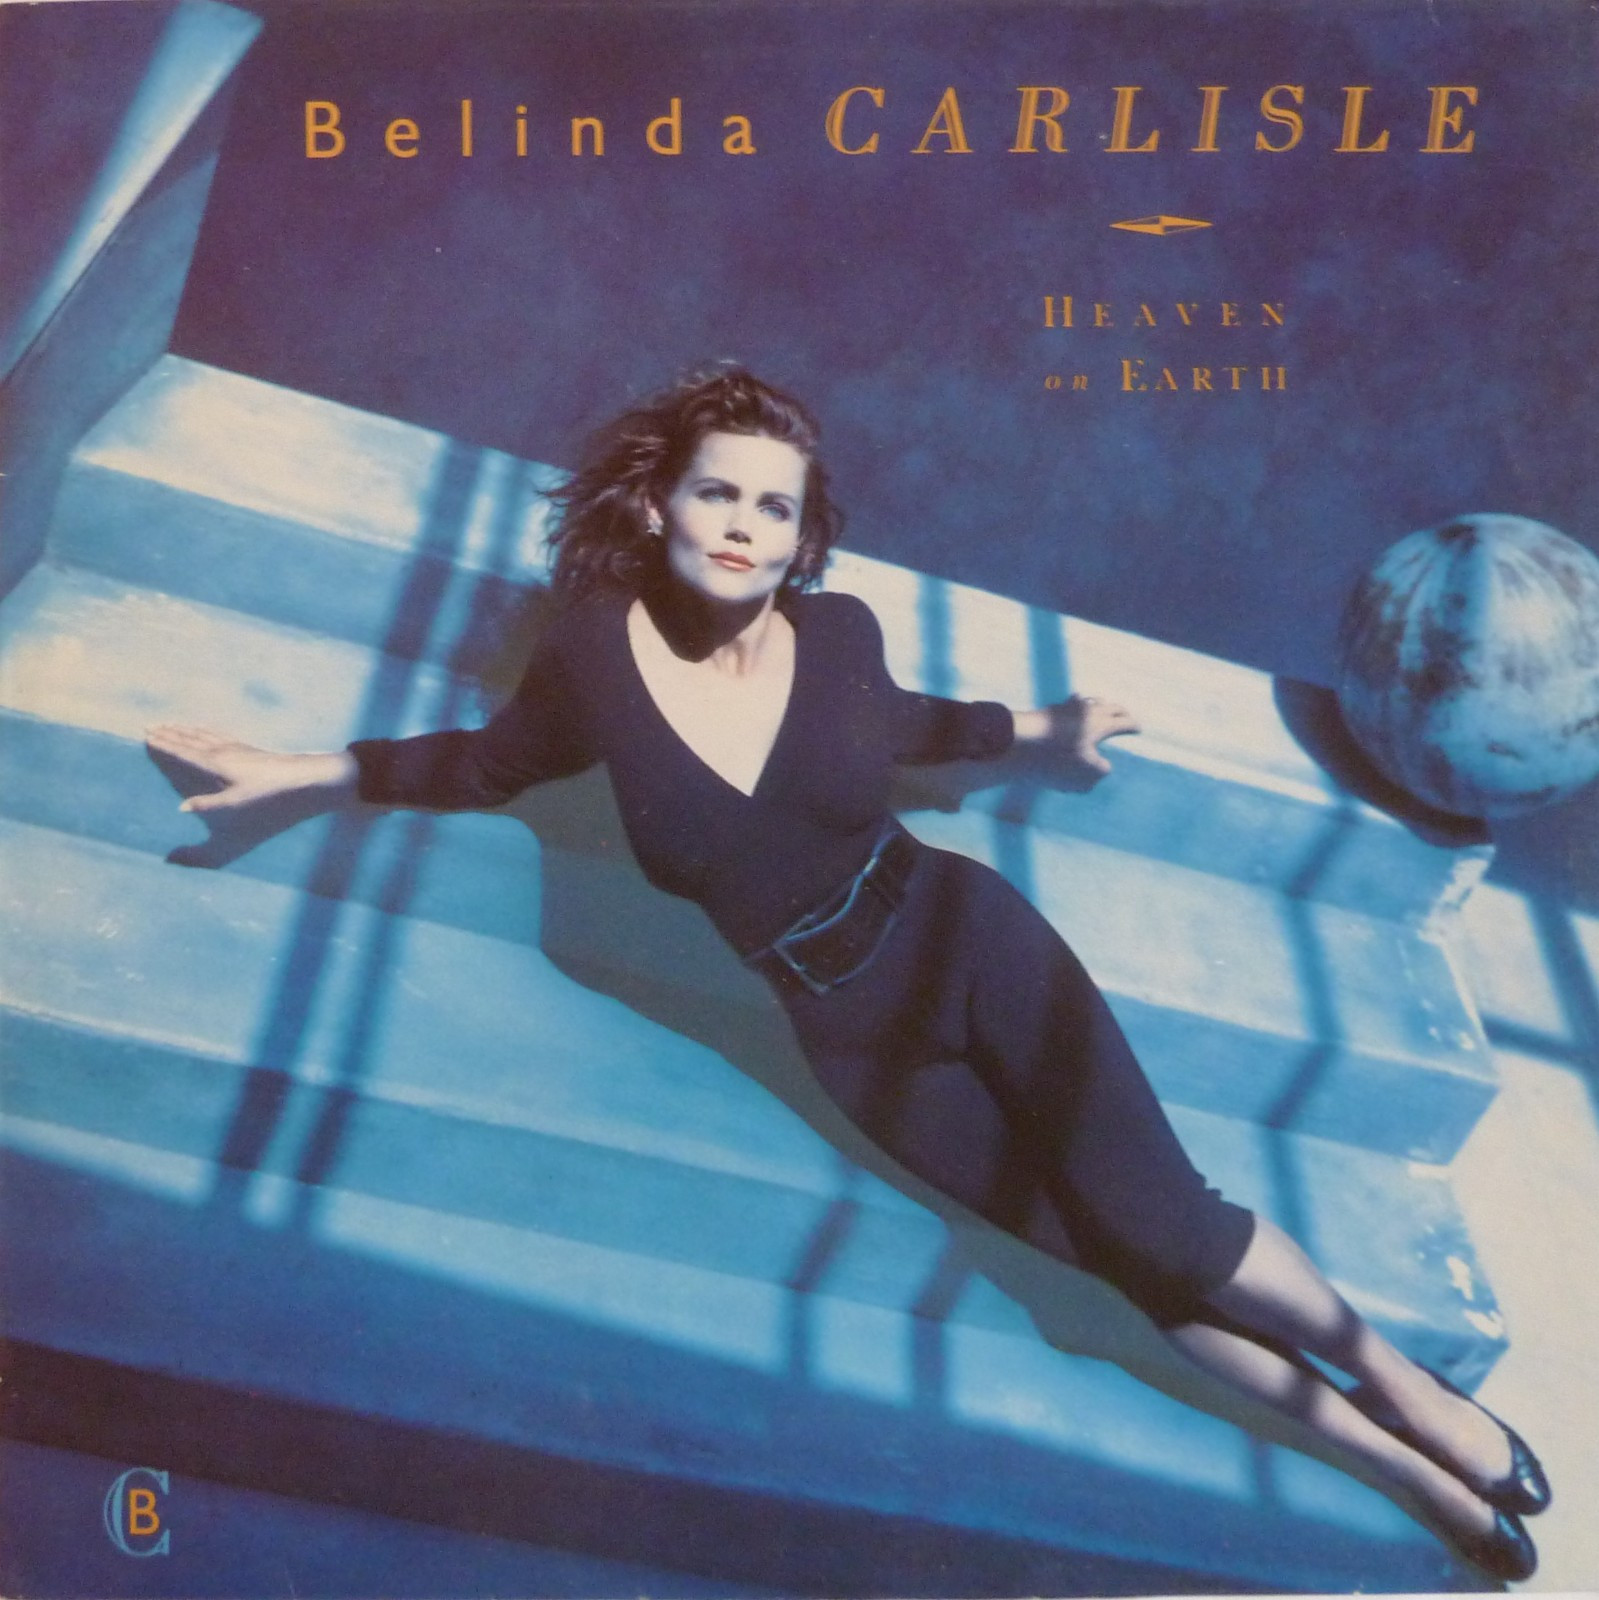 "Belinda Carlisle - Heaven on Earth (1987) - Ski  - Belinda Carlisle - Heaven on Earth. Utgitt på MCA Records, US 1987. Vinyl album 12"". Label MCA-42080.